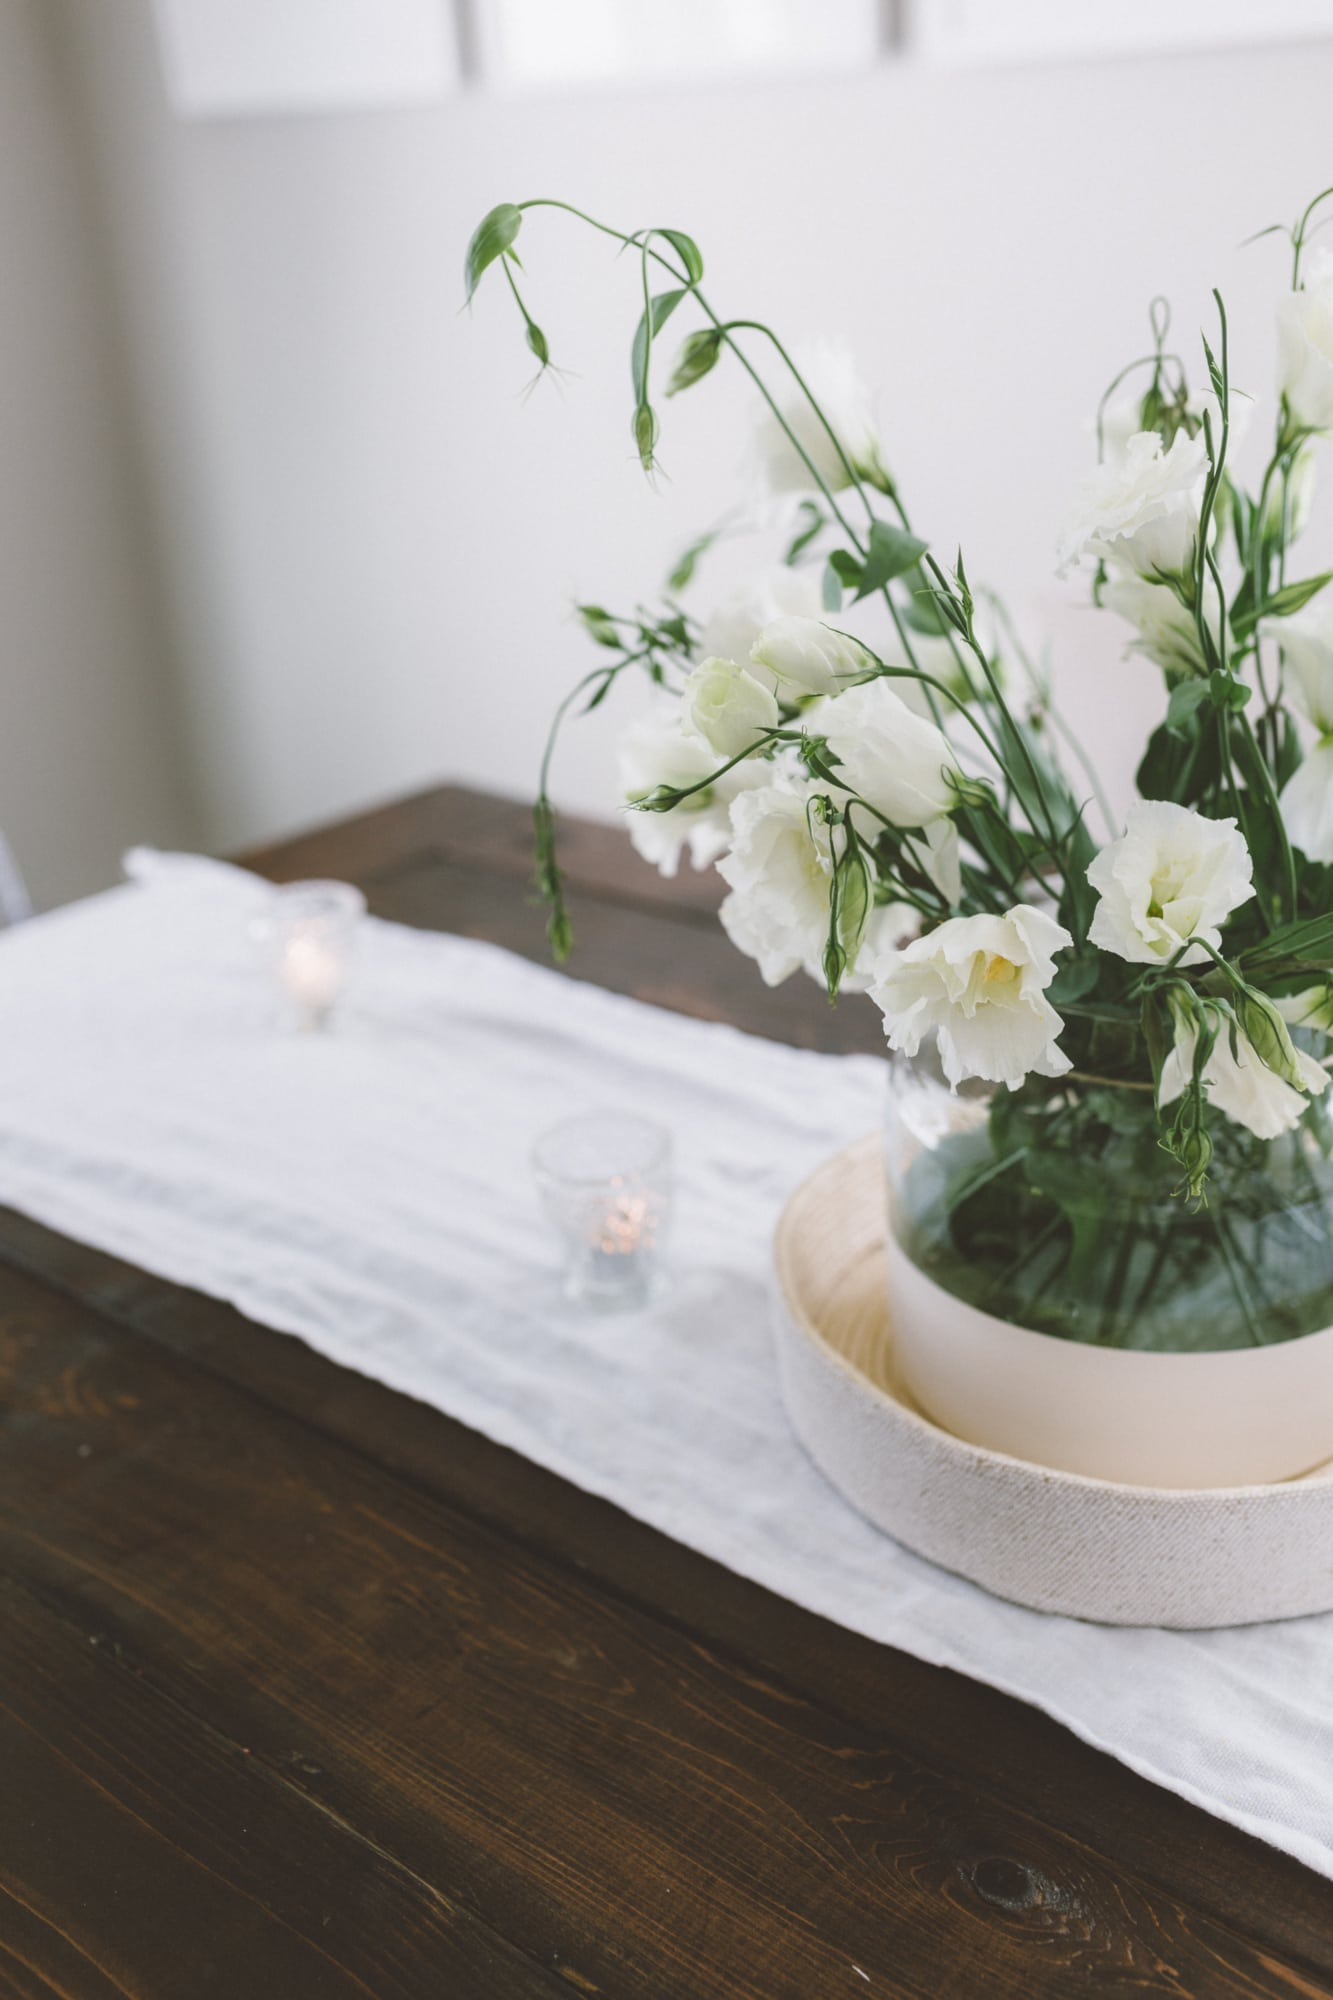 Flowers on dining table